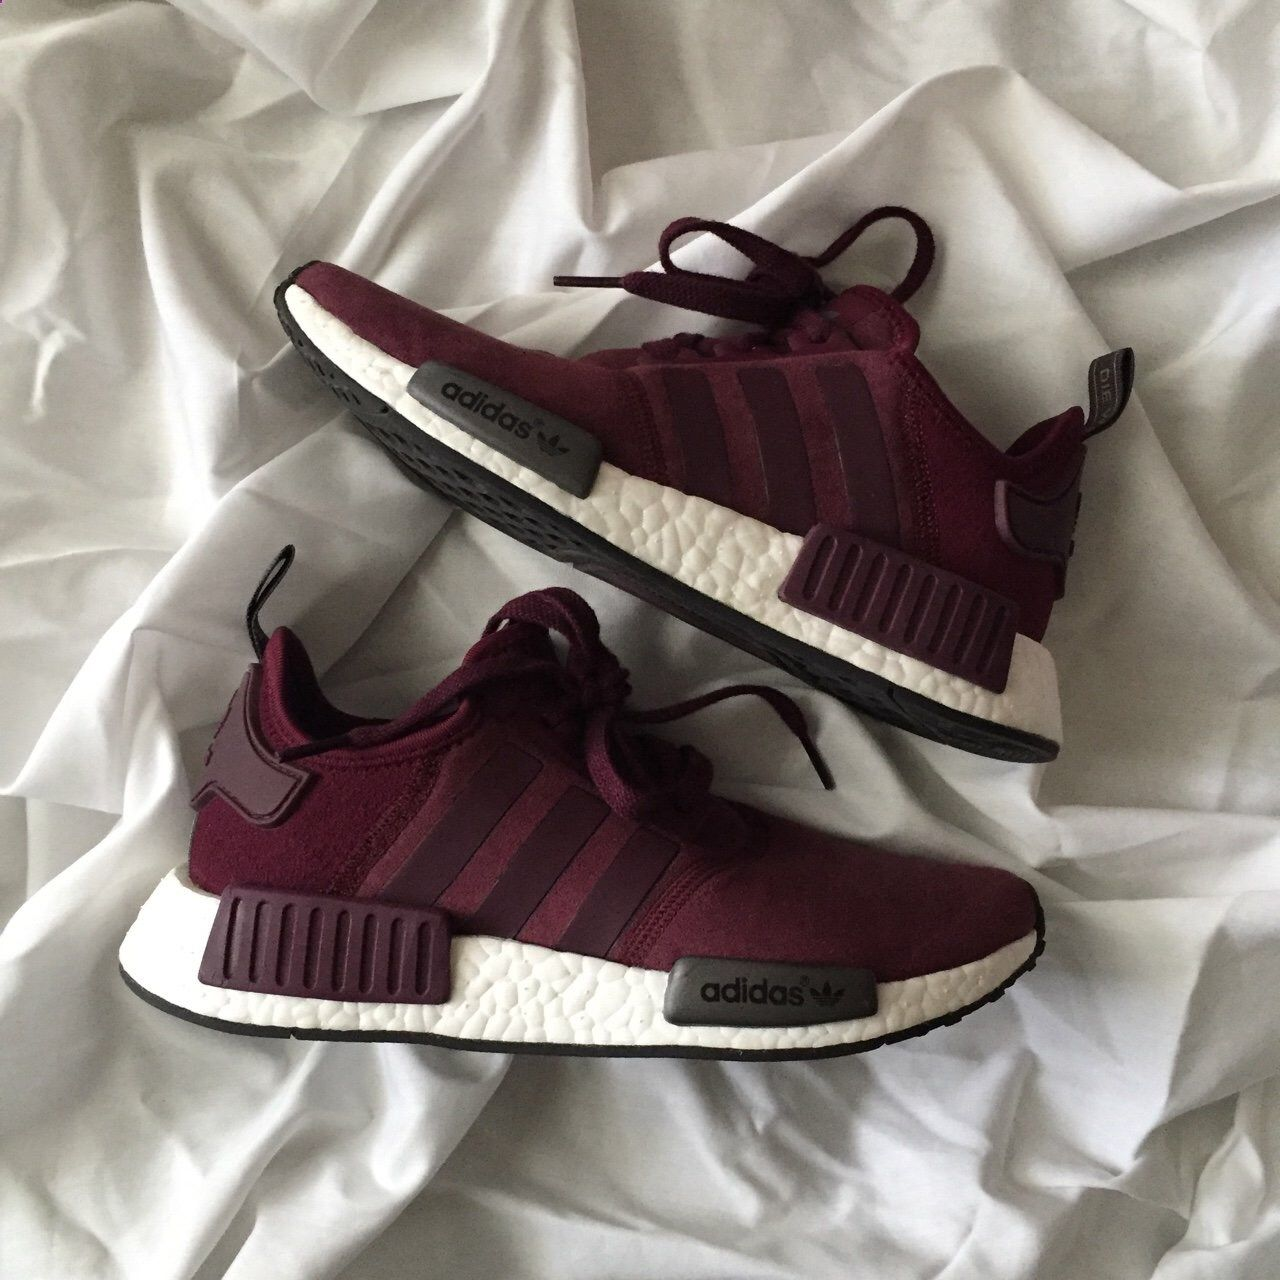 17+ Womens adidas originals nmd r1 animal print casual shoes ideas in 2021